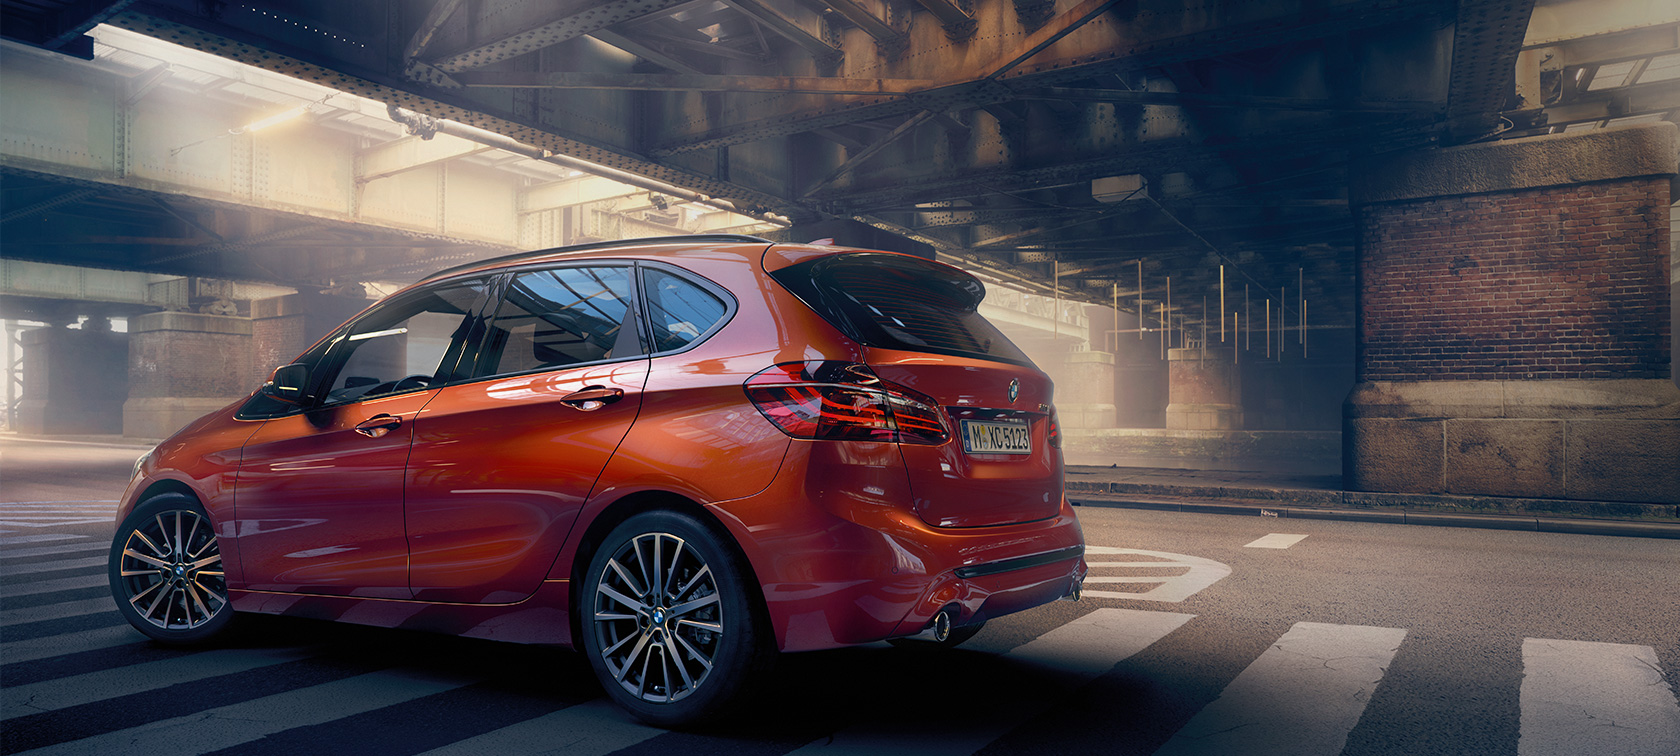 BMW Série 2 Active Tourer F45 restylage 2018 Sunset Orange metallic, vue de profil dans un hall